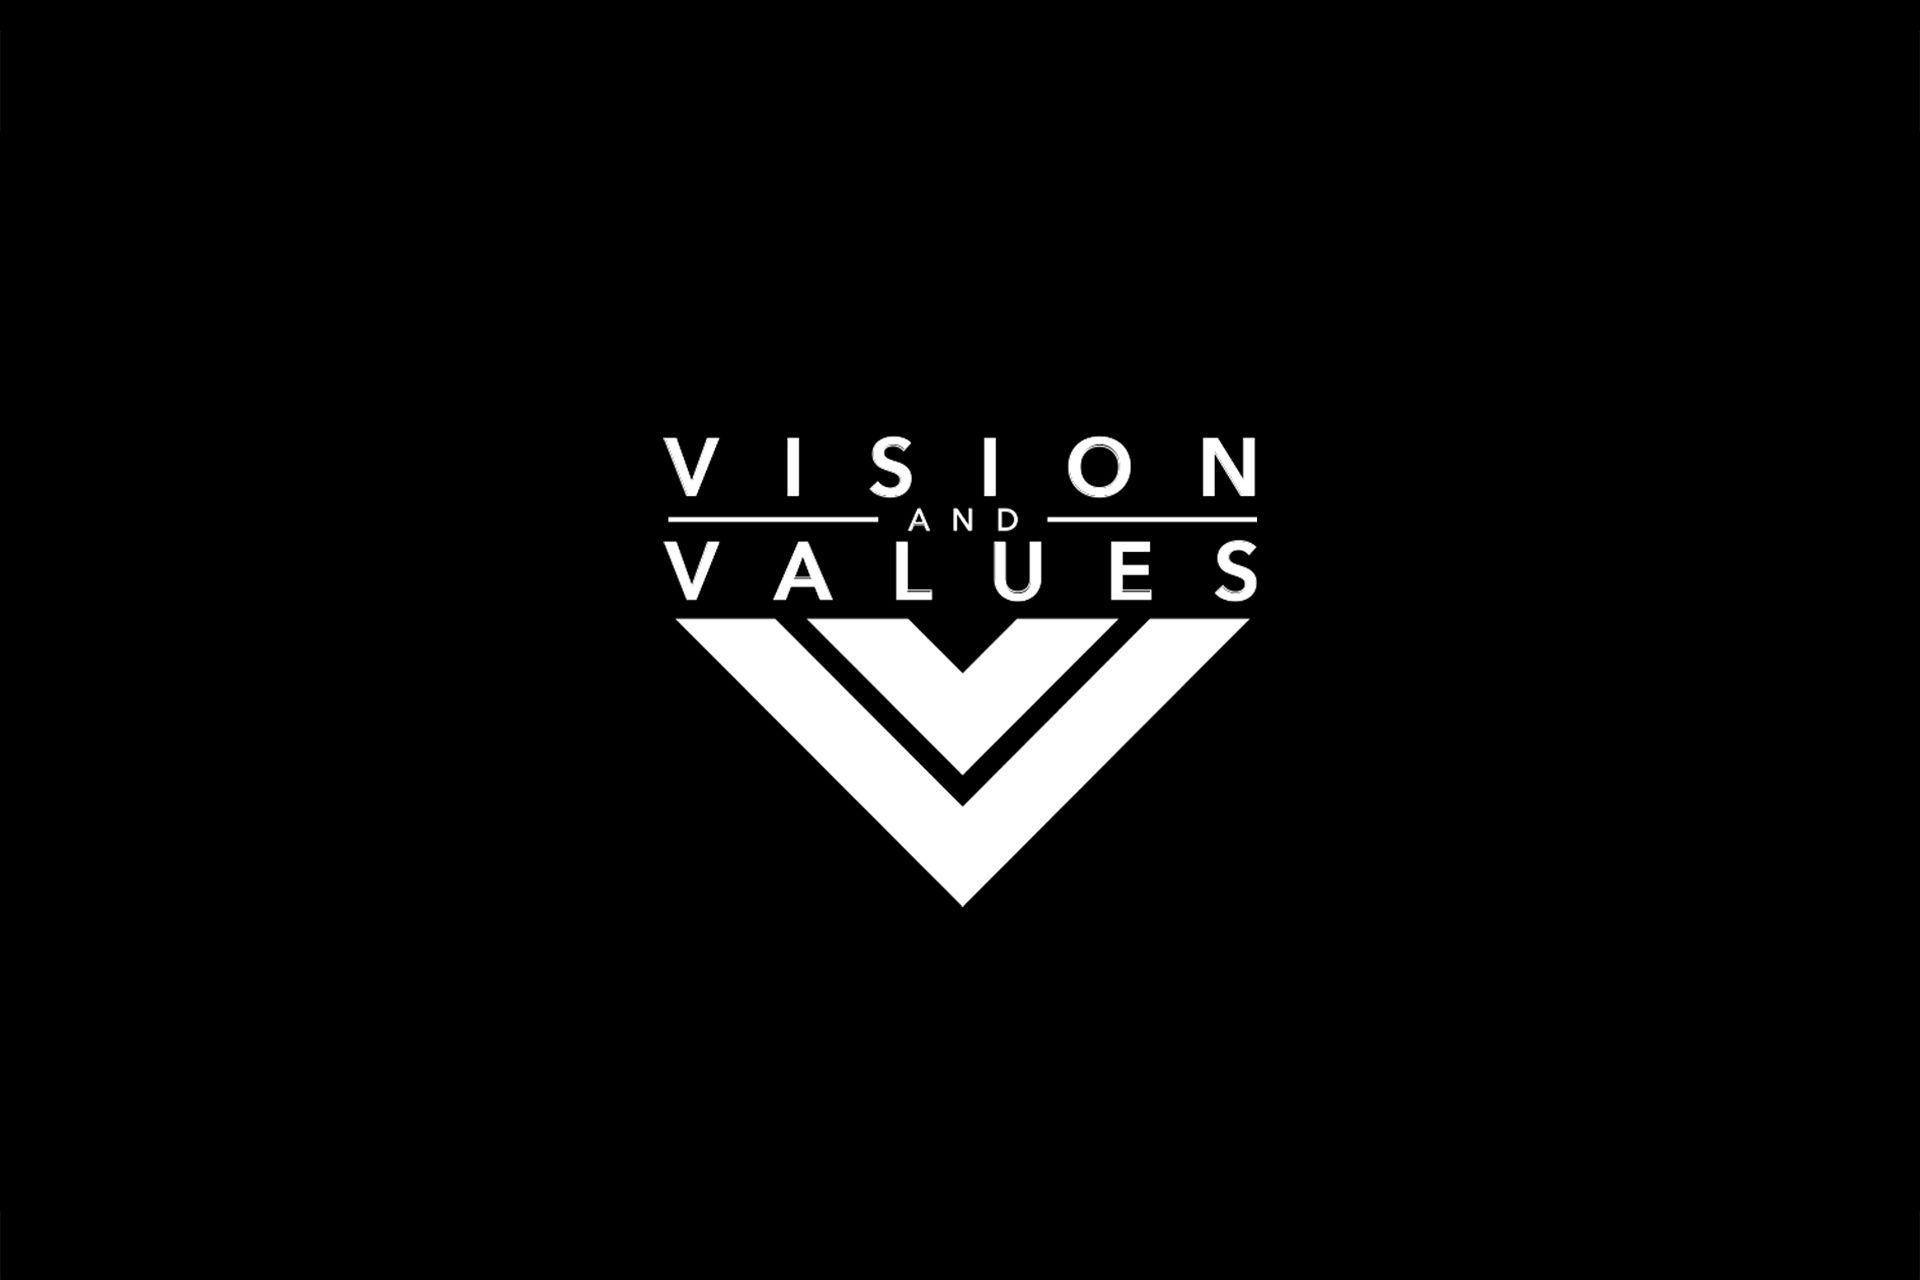 About-Mission-Values